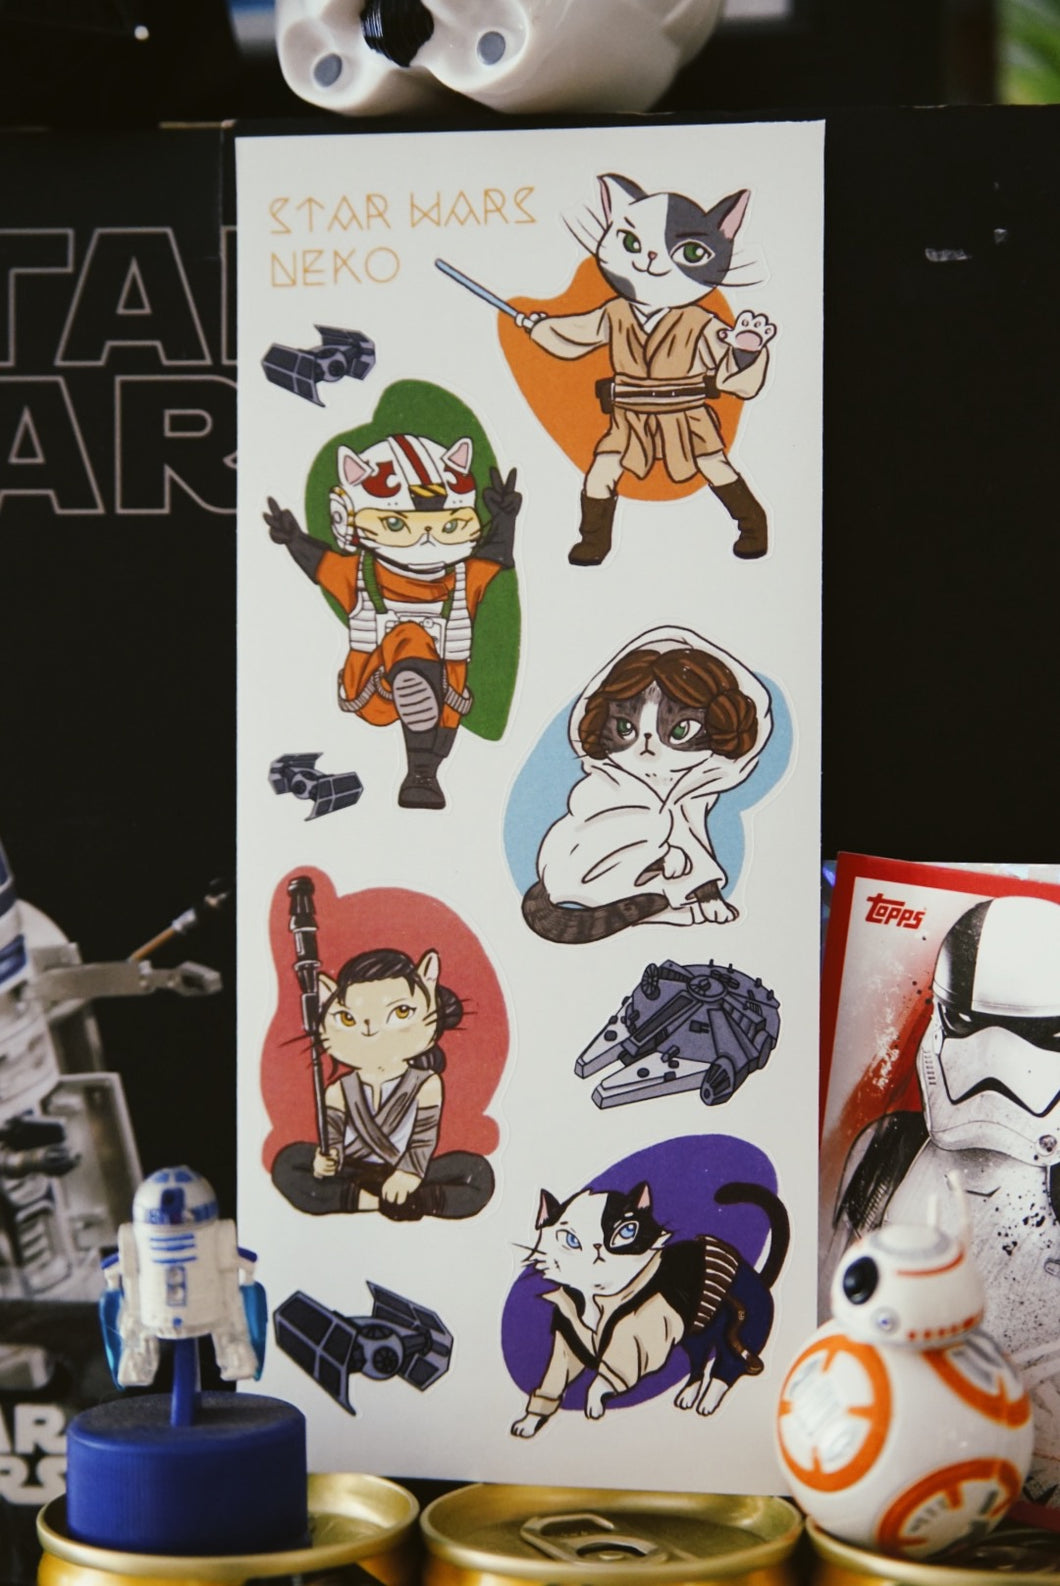 Star Wars Neko Stickers